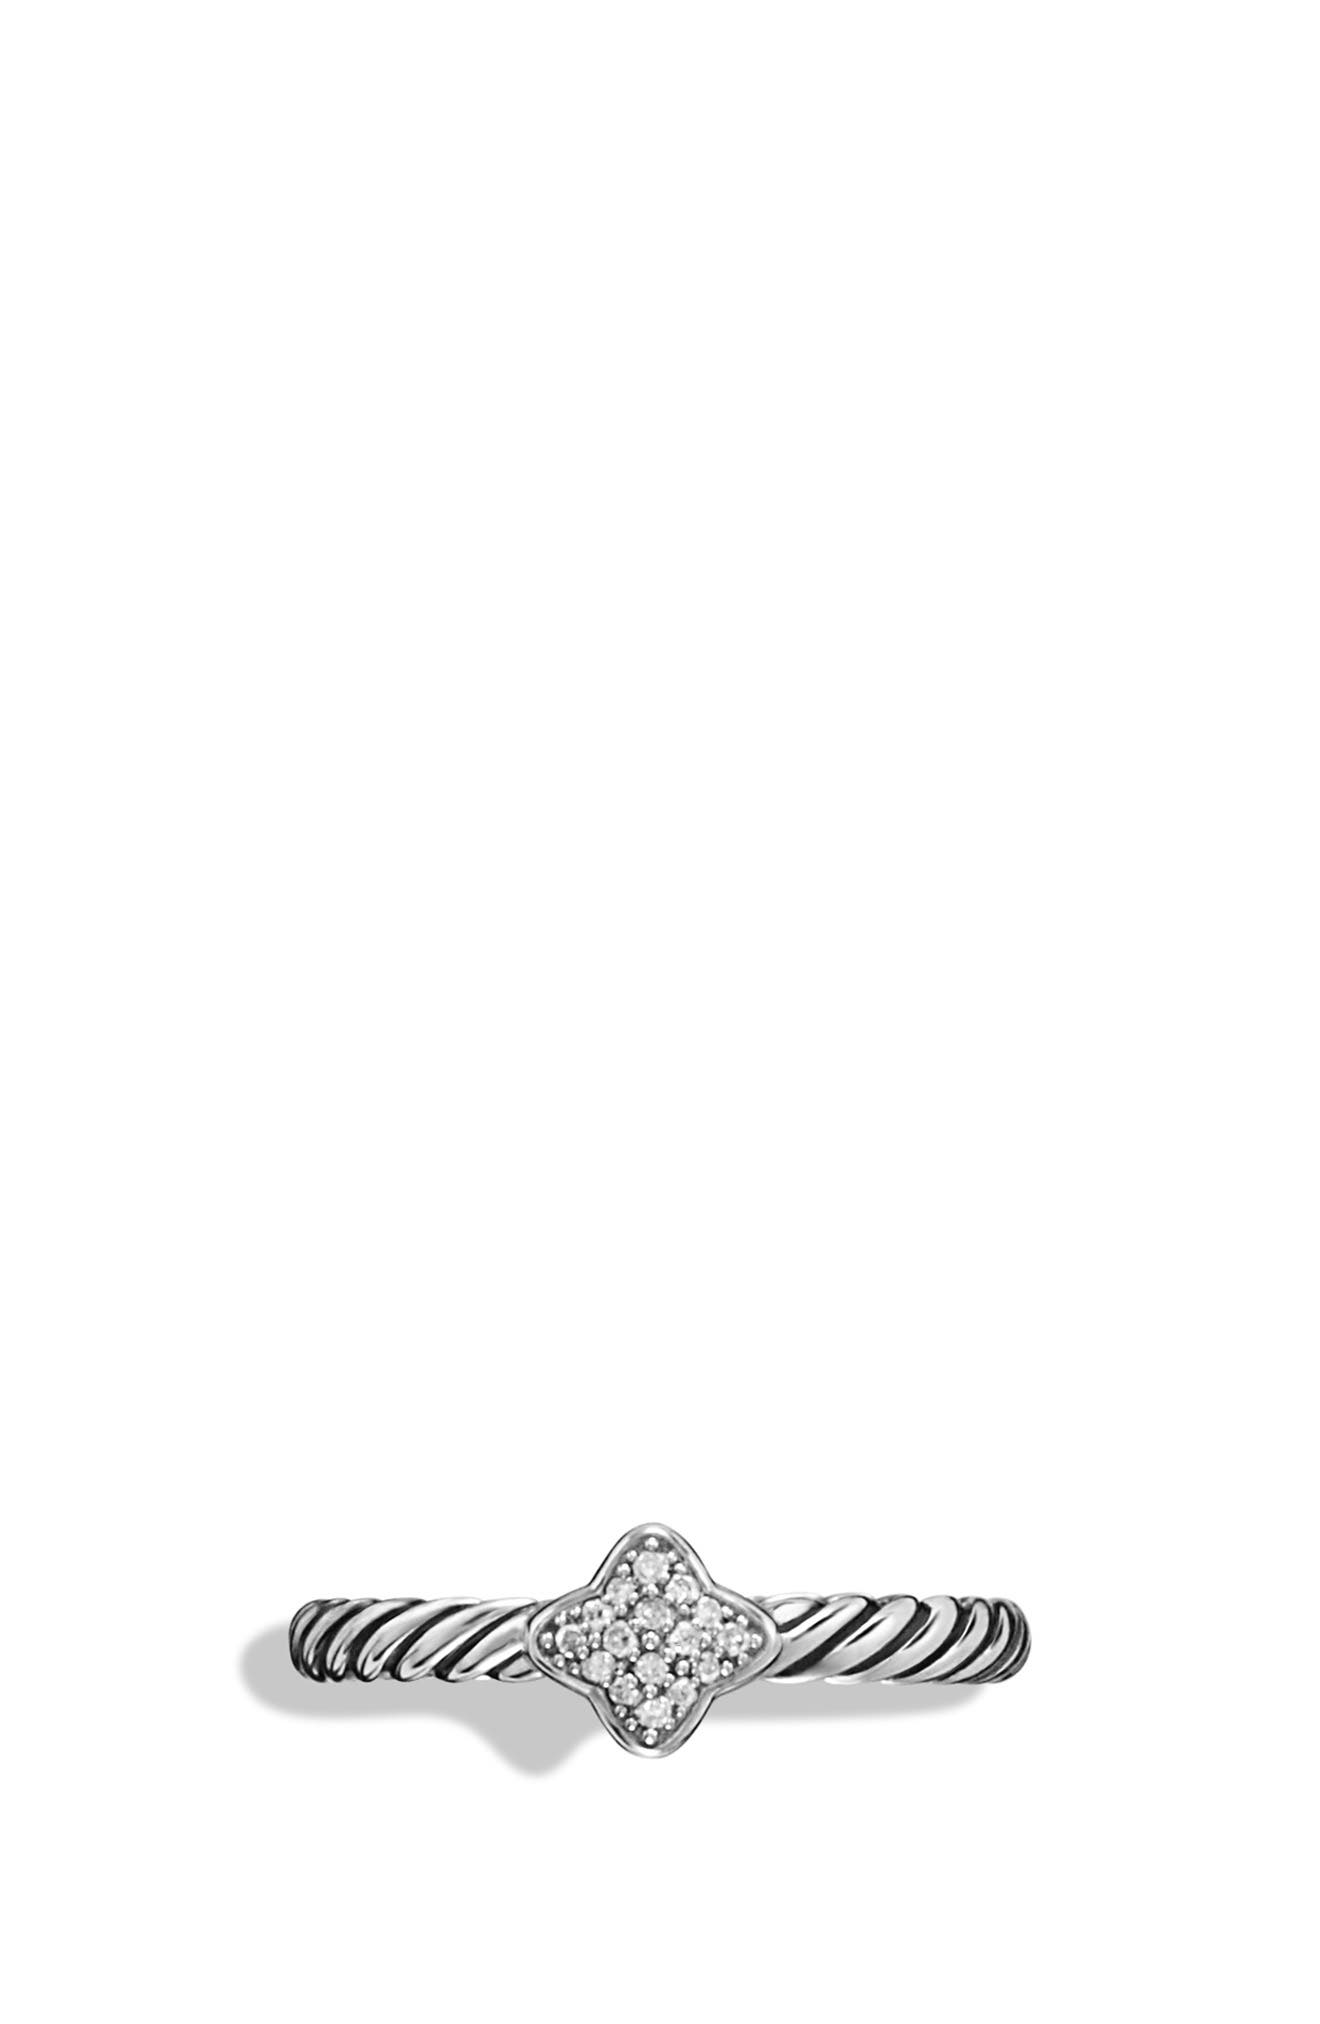 Quatrefoil Ring with Diamonds,                             Alternate thumbnail 4, color,                             Diamond